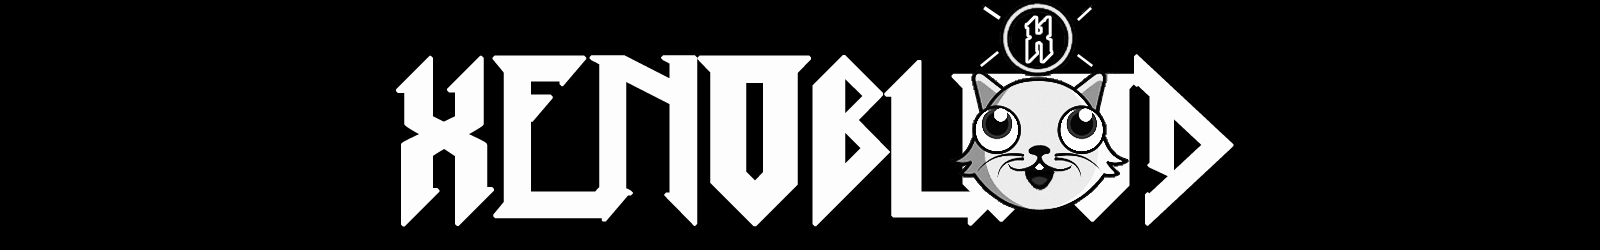 the word XENOBLOOD in a white angular font on a black background. A black and white animal face animation obscures the word with an X above its head.